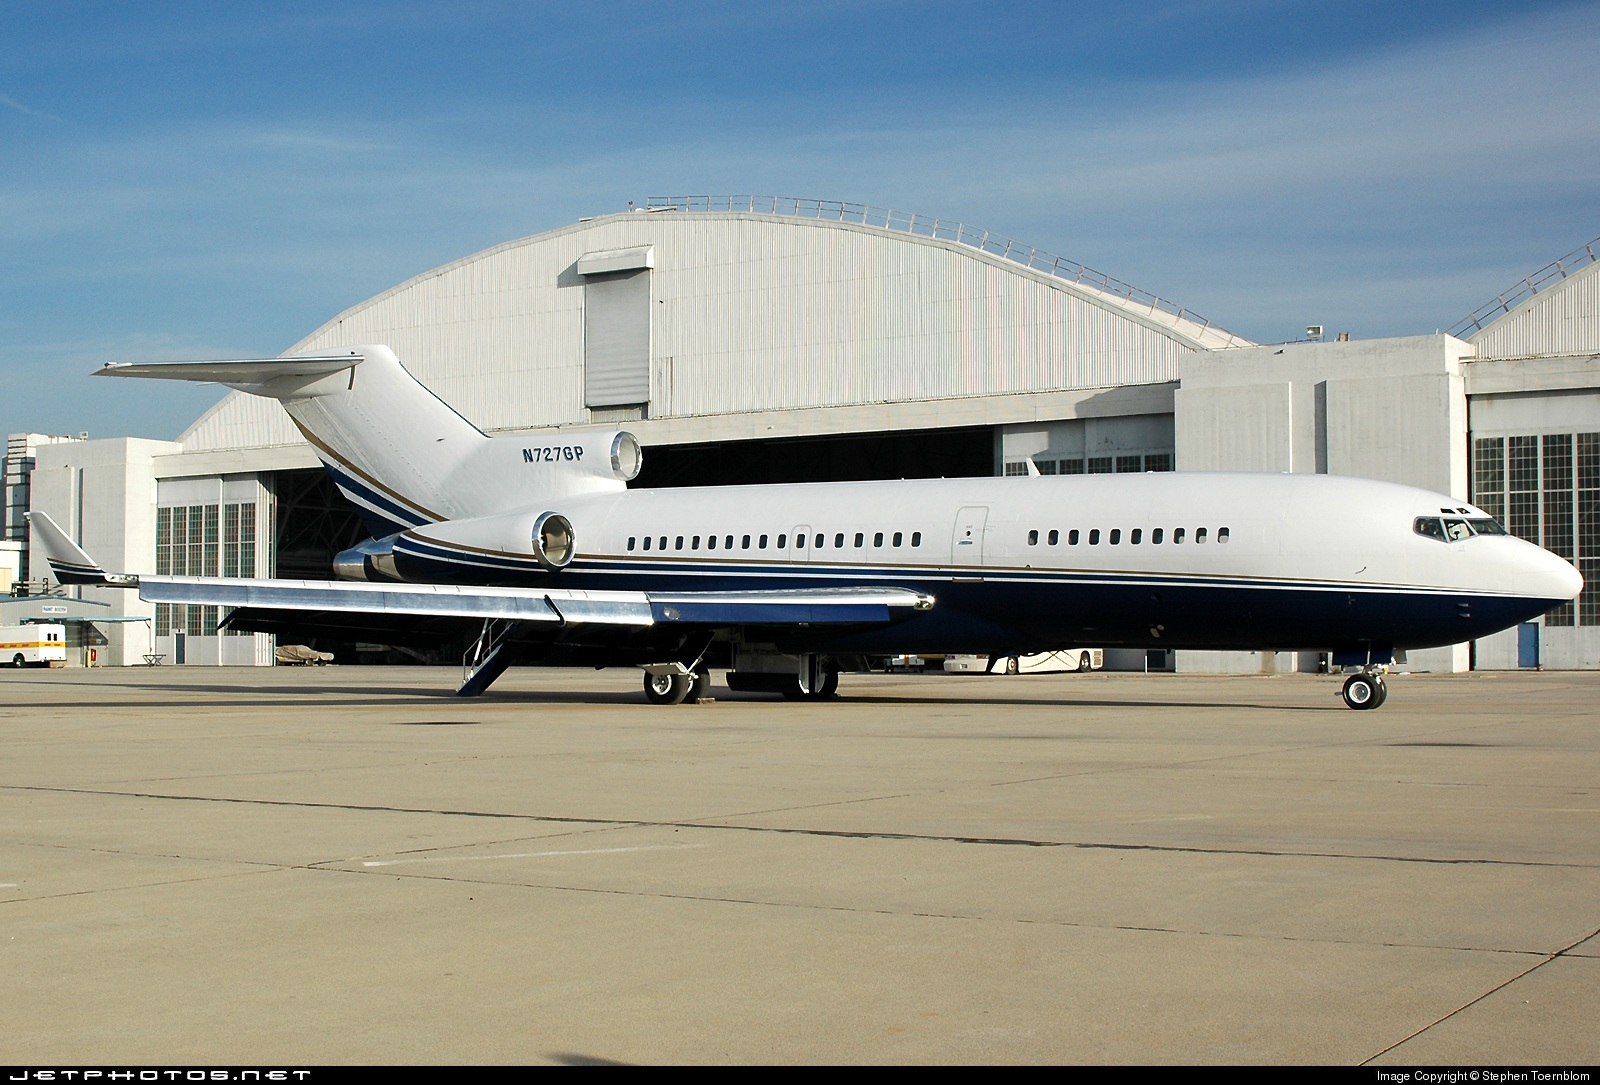 N727GP - Boeing 727-21 - Private